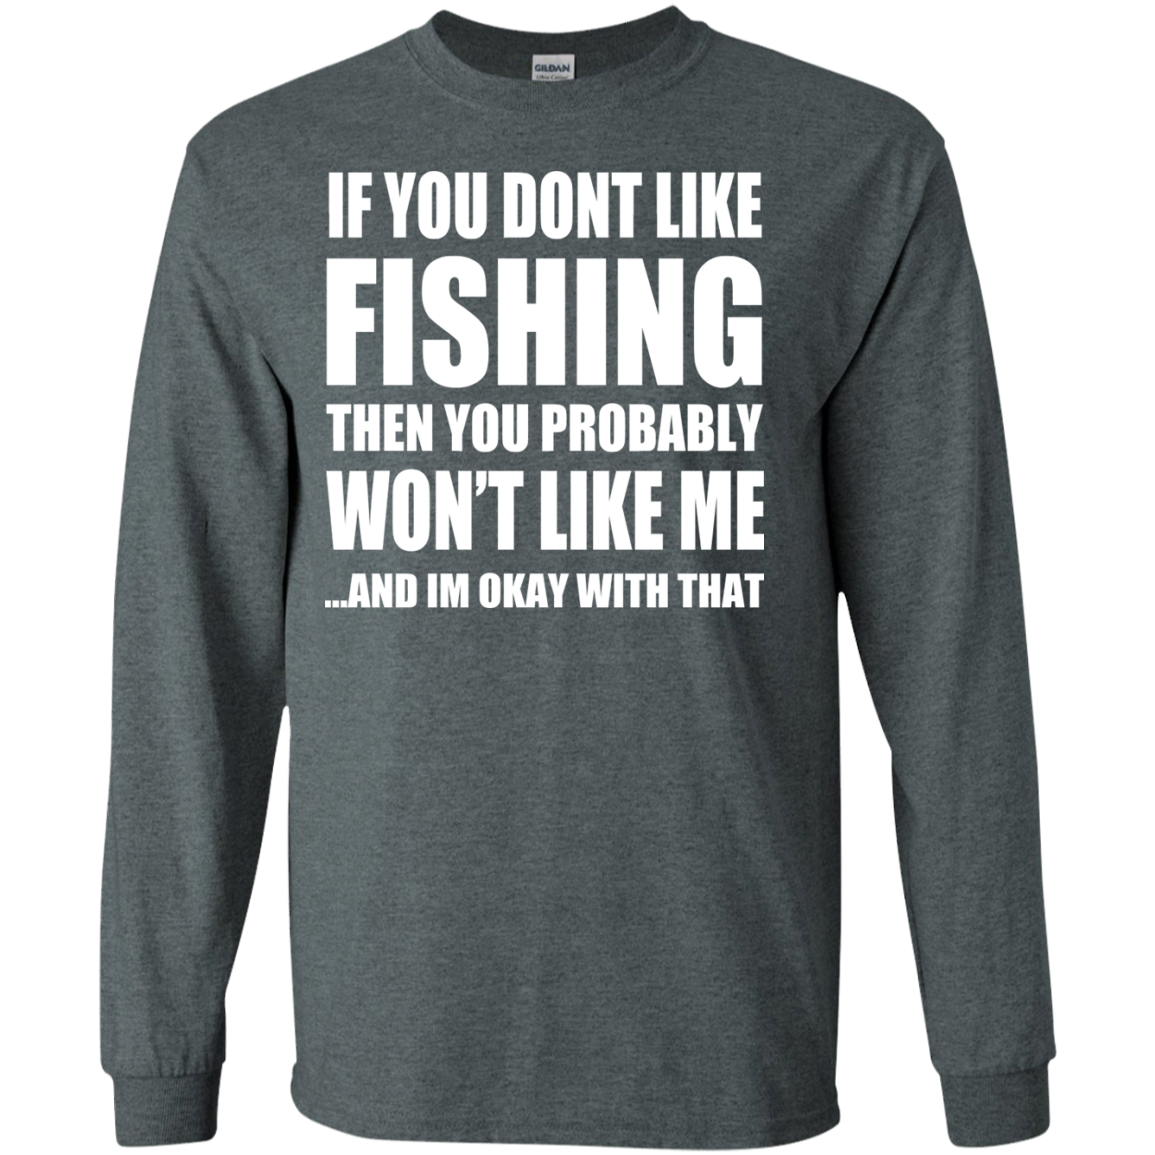 If You Dont Like Fishing Then You Probably Wont Like Me And Im Okay With That Long Sleeve Tees